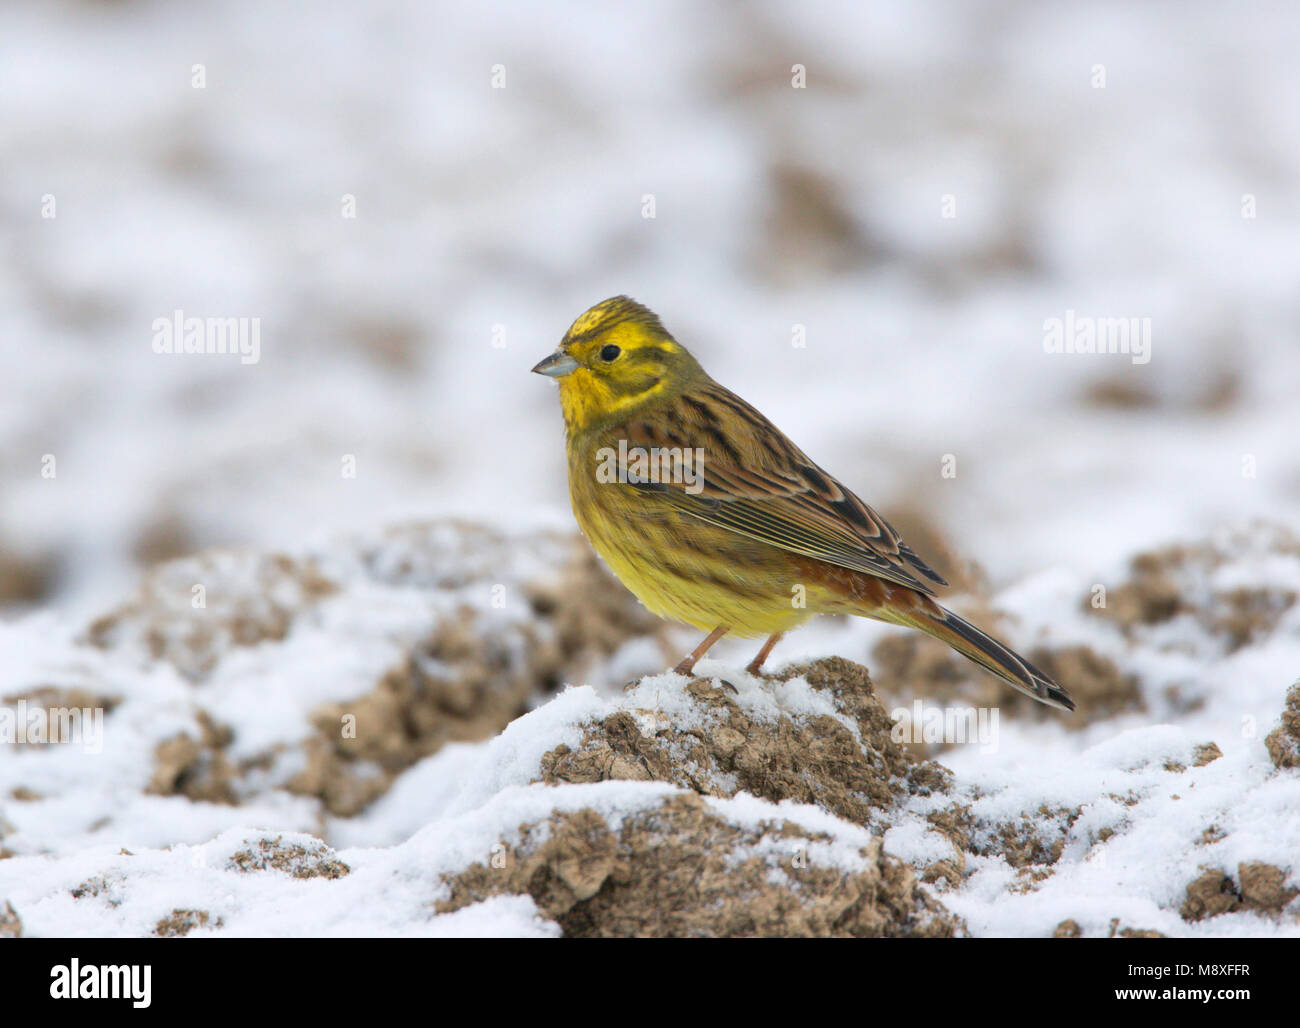 Mannetje Geelgors staand op besneeuwde akker. Male Yellowhammer standing on arable land with snowcover - Stock Image